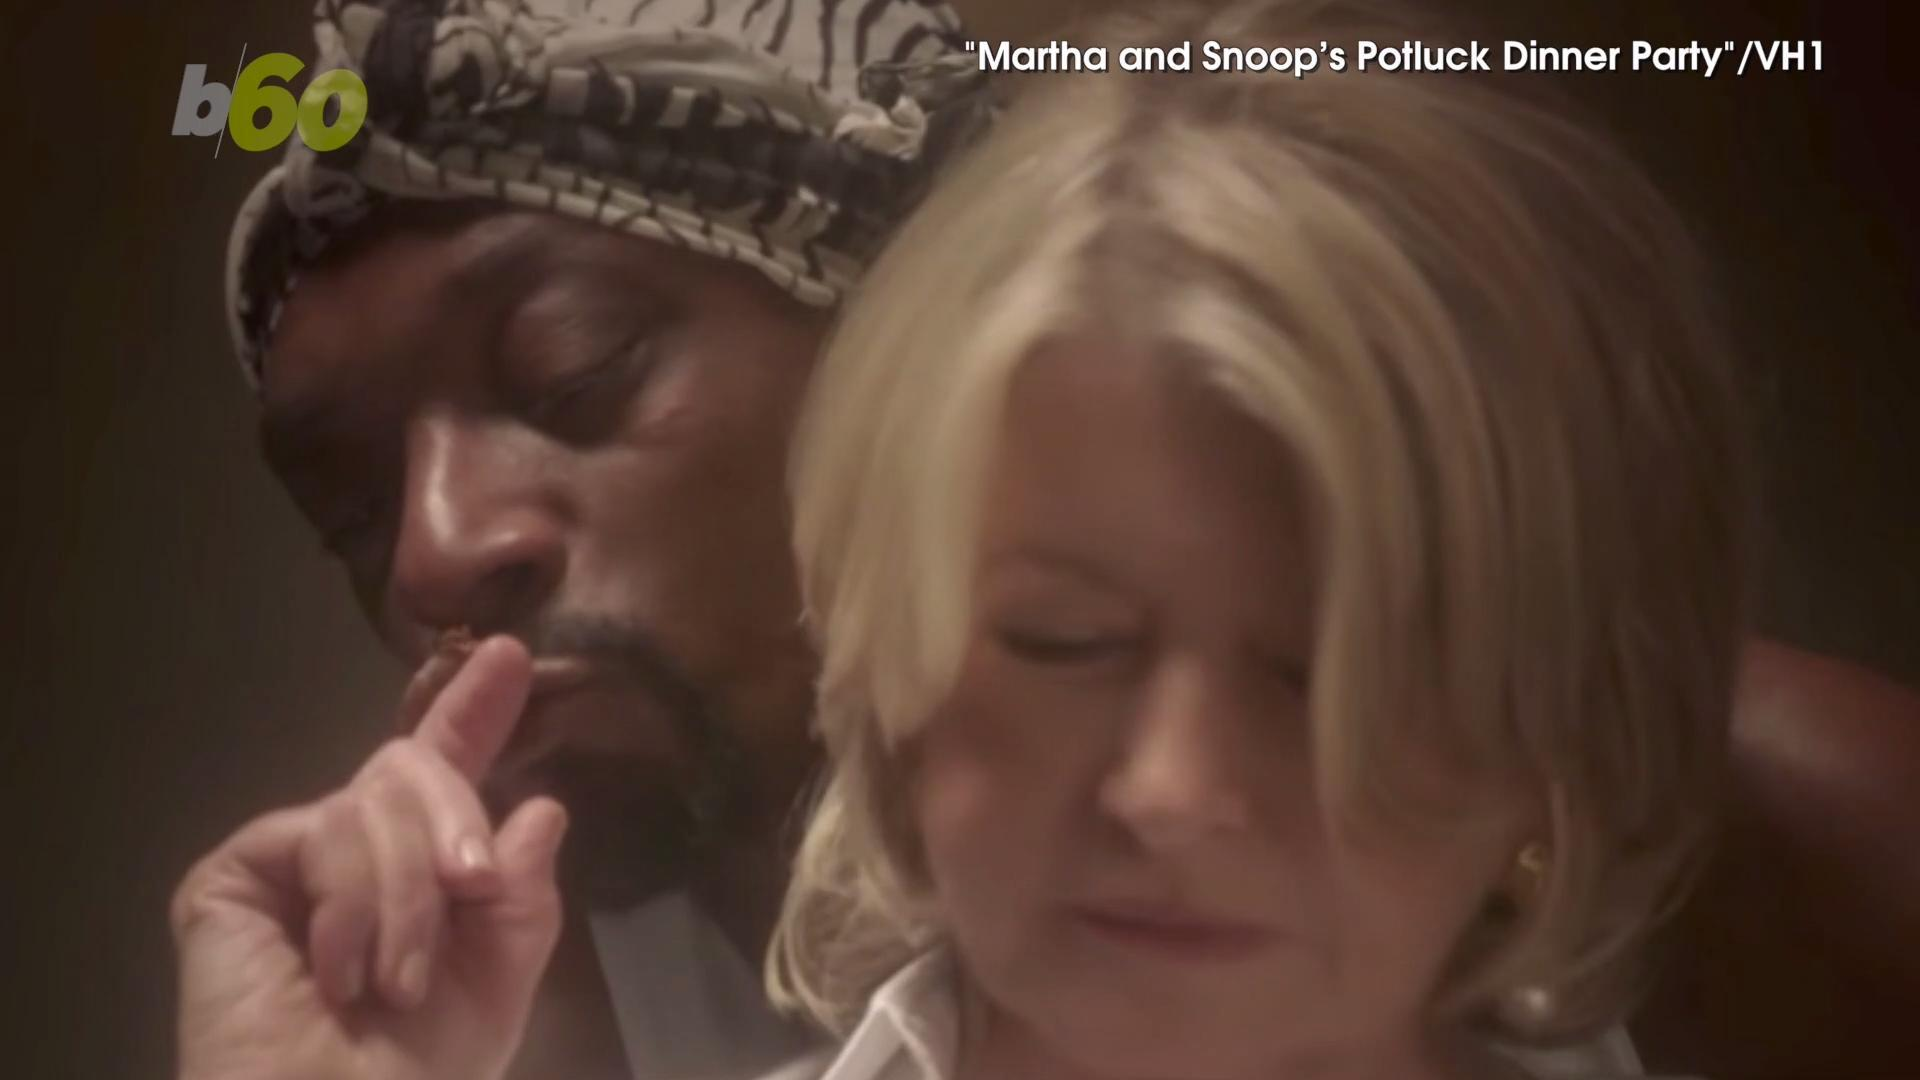 So Steamy! Snoop Dogg and Martha Stewart Recreate Sexy 'Ghost' Scene